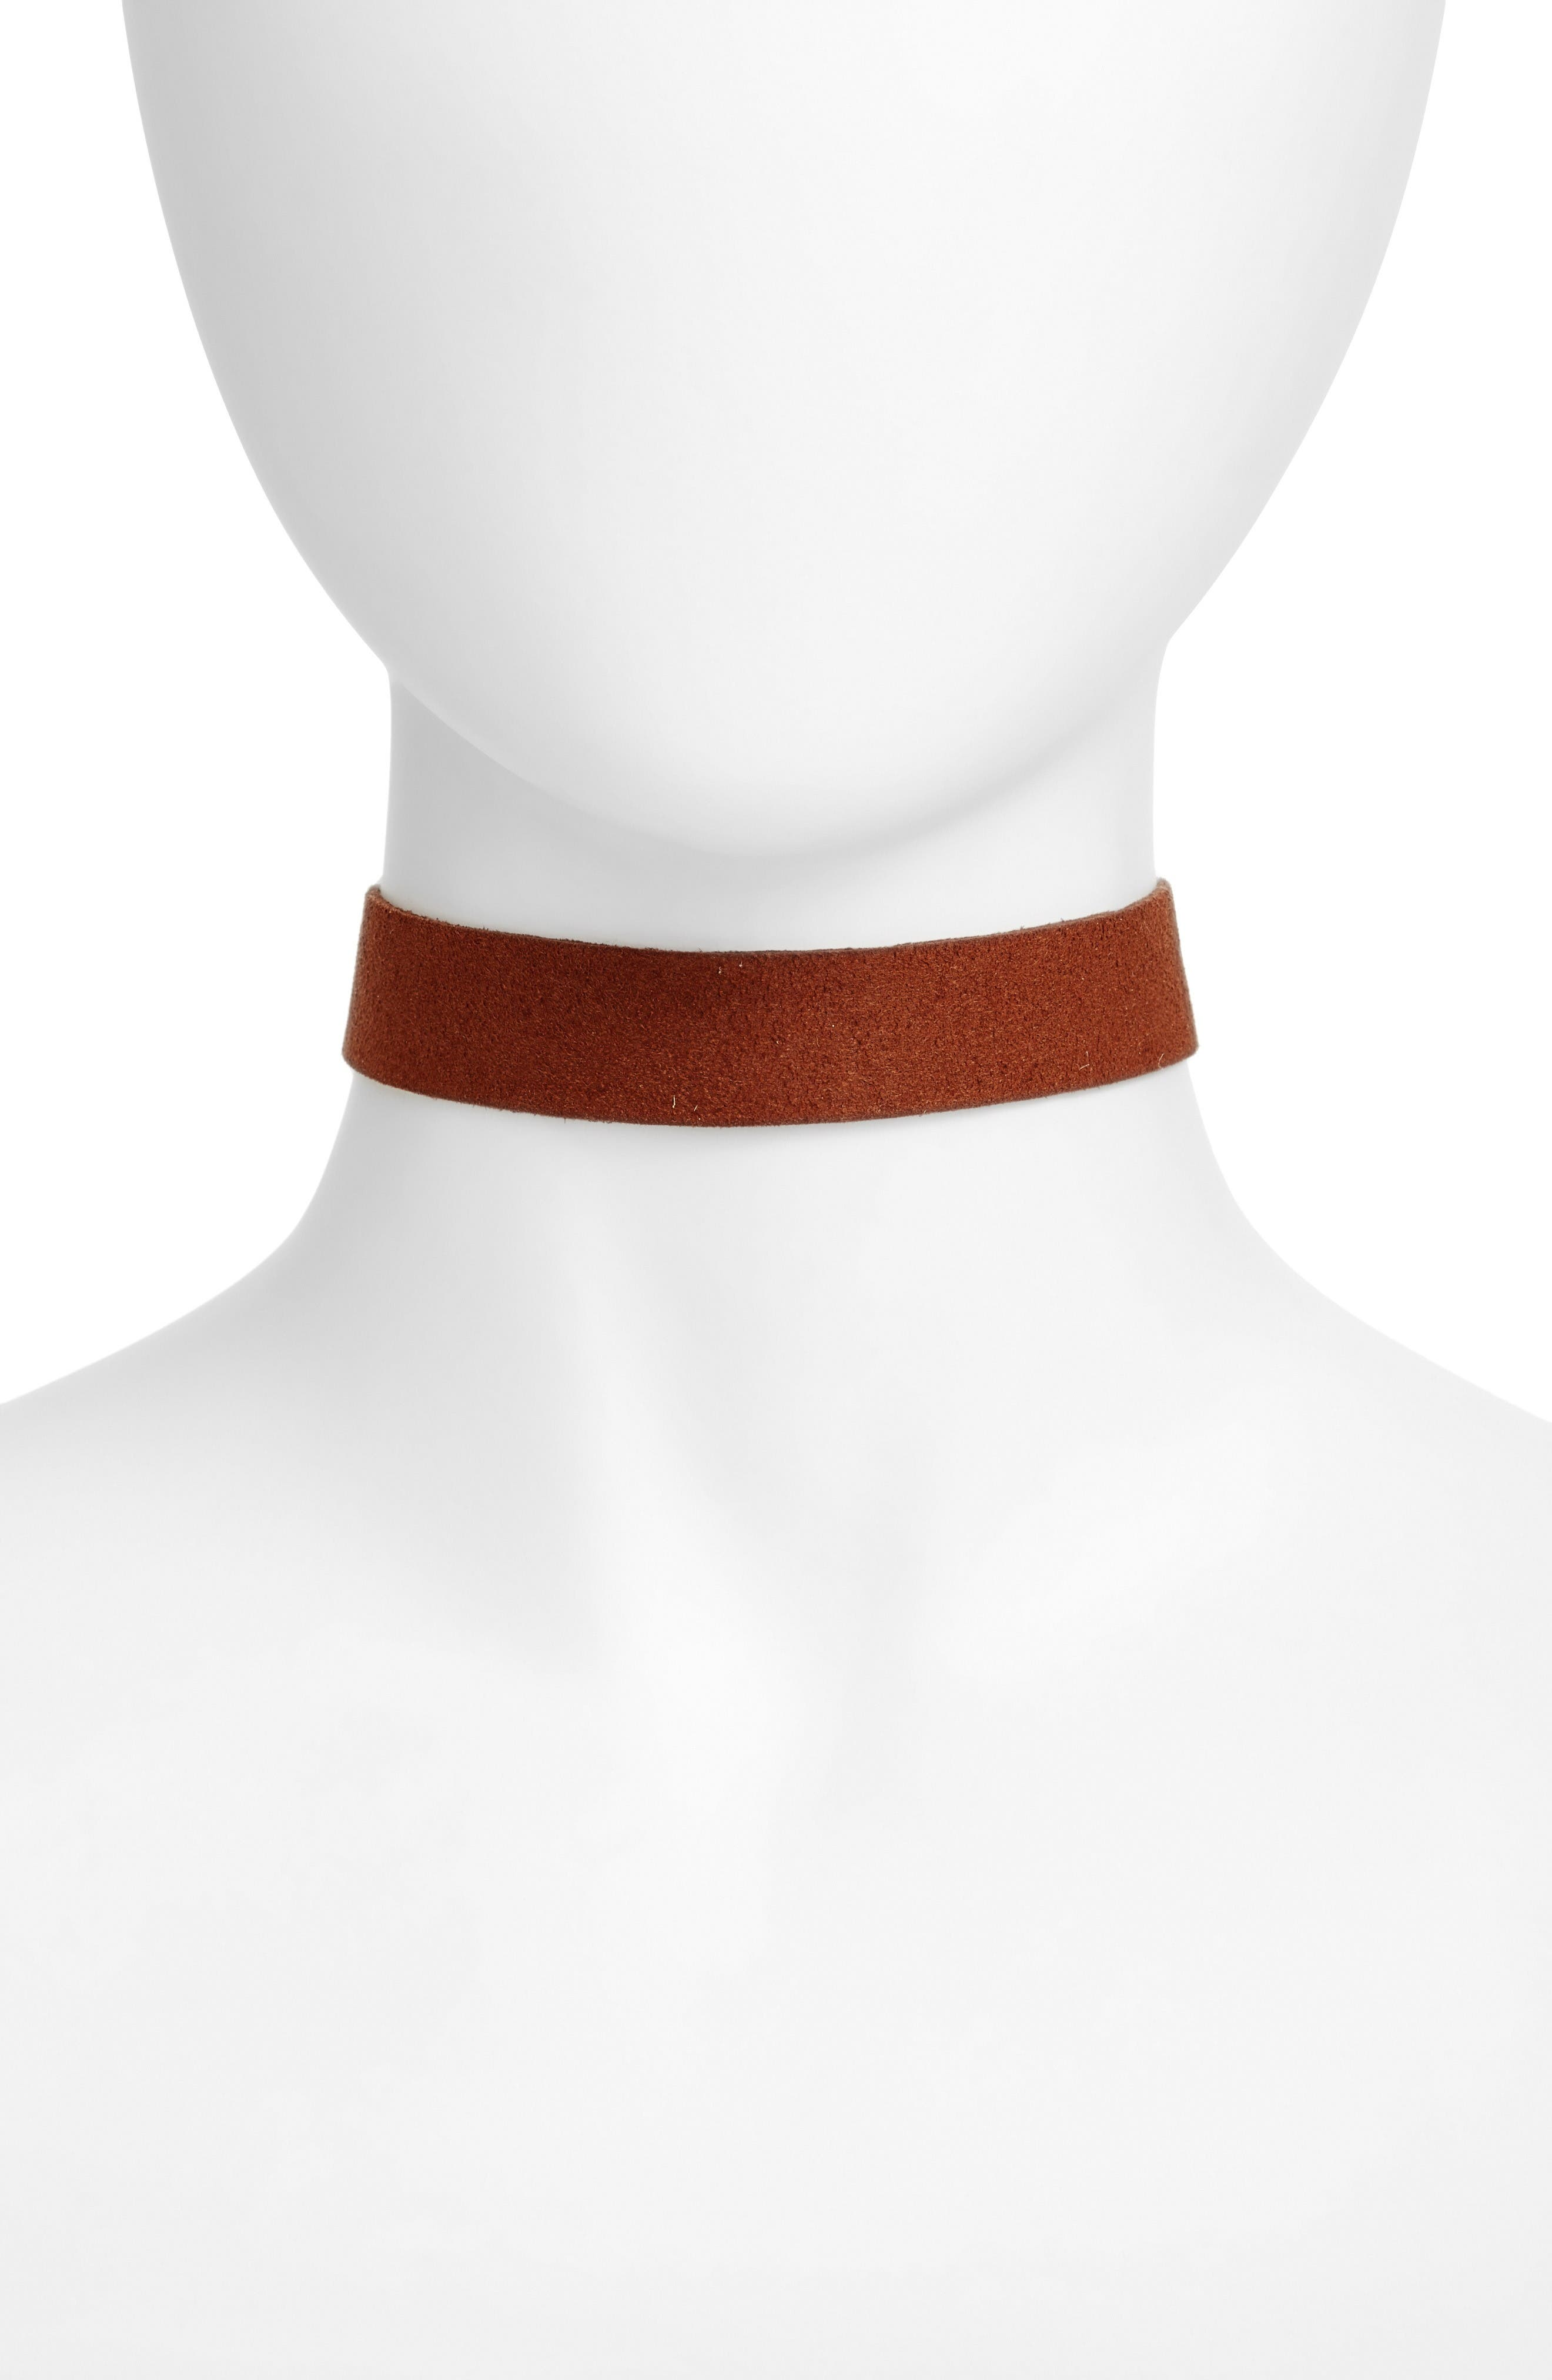 Alternate Image 1 Selected - Jules Smith Orion Faux Suede Choker